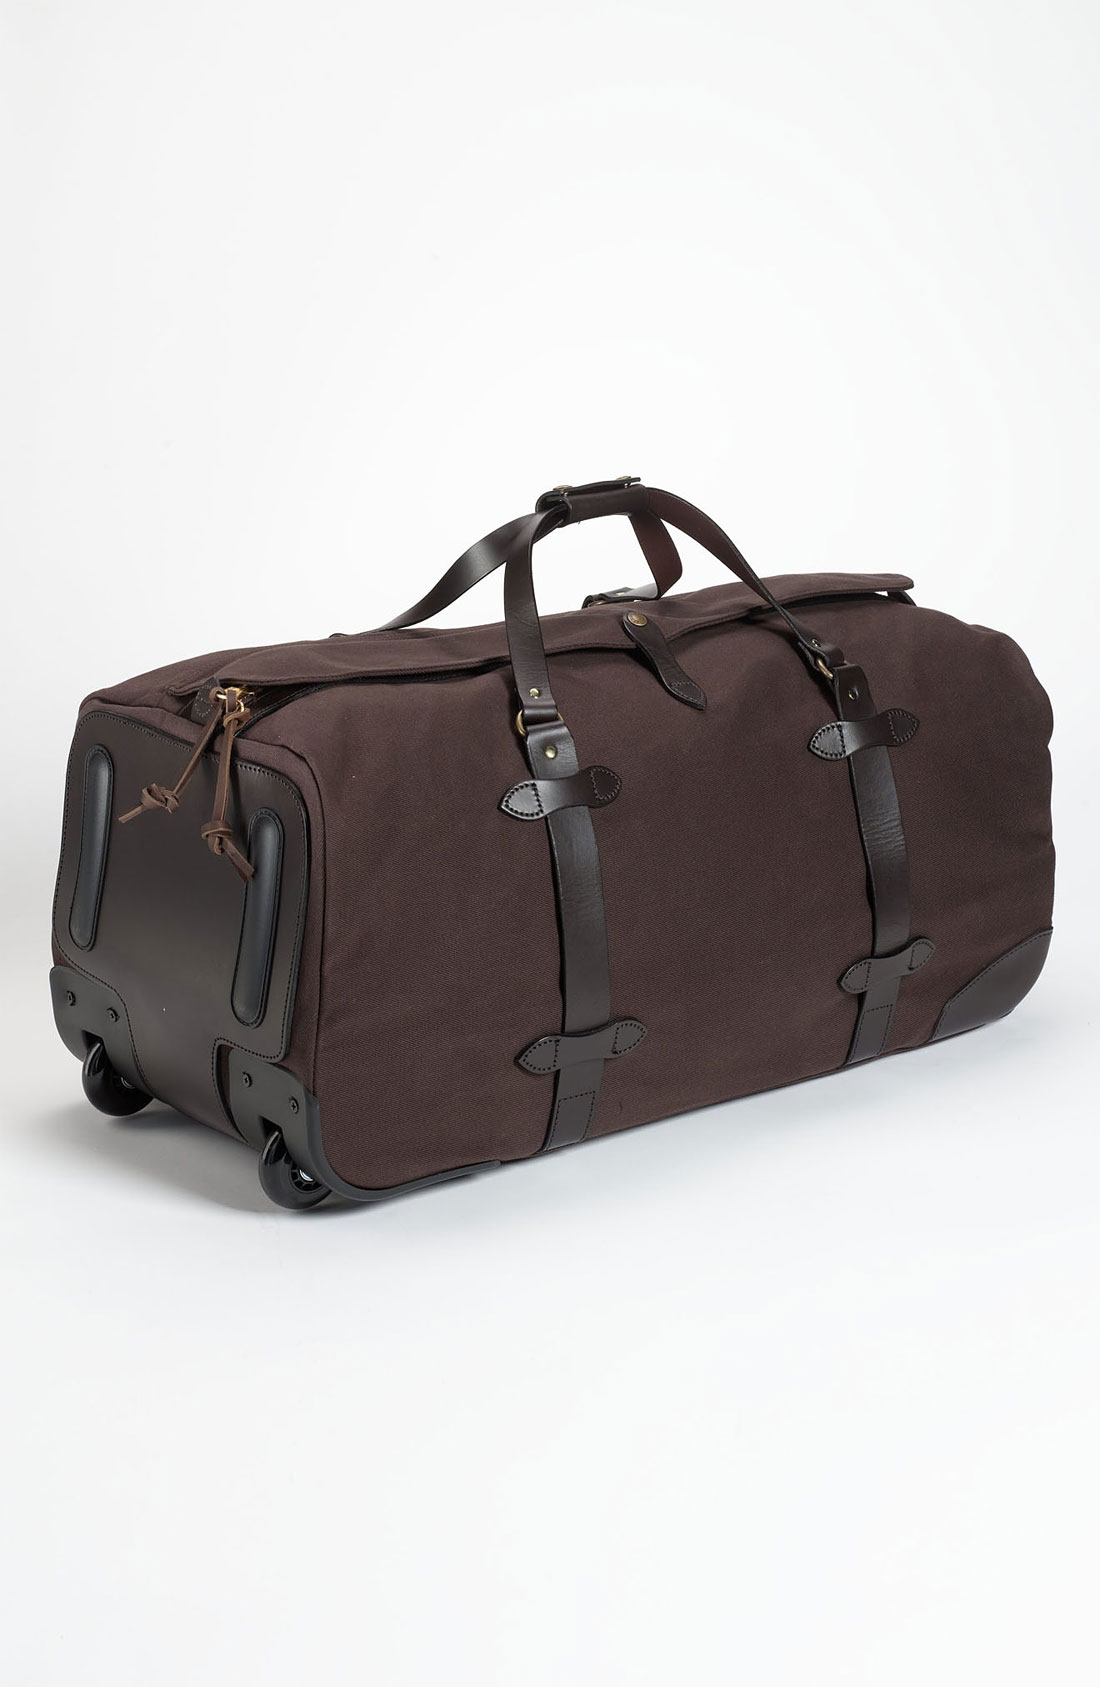 filson large wheeled duffel bag in brown for men lyst. Black Bedroom Furniture Sets. Home Design Ideas